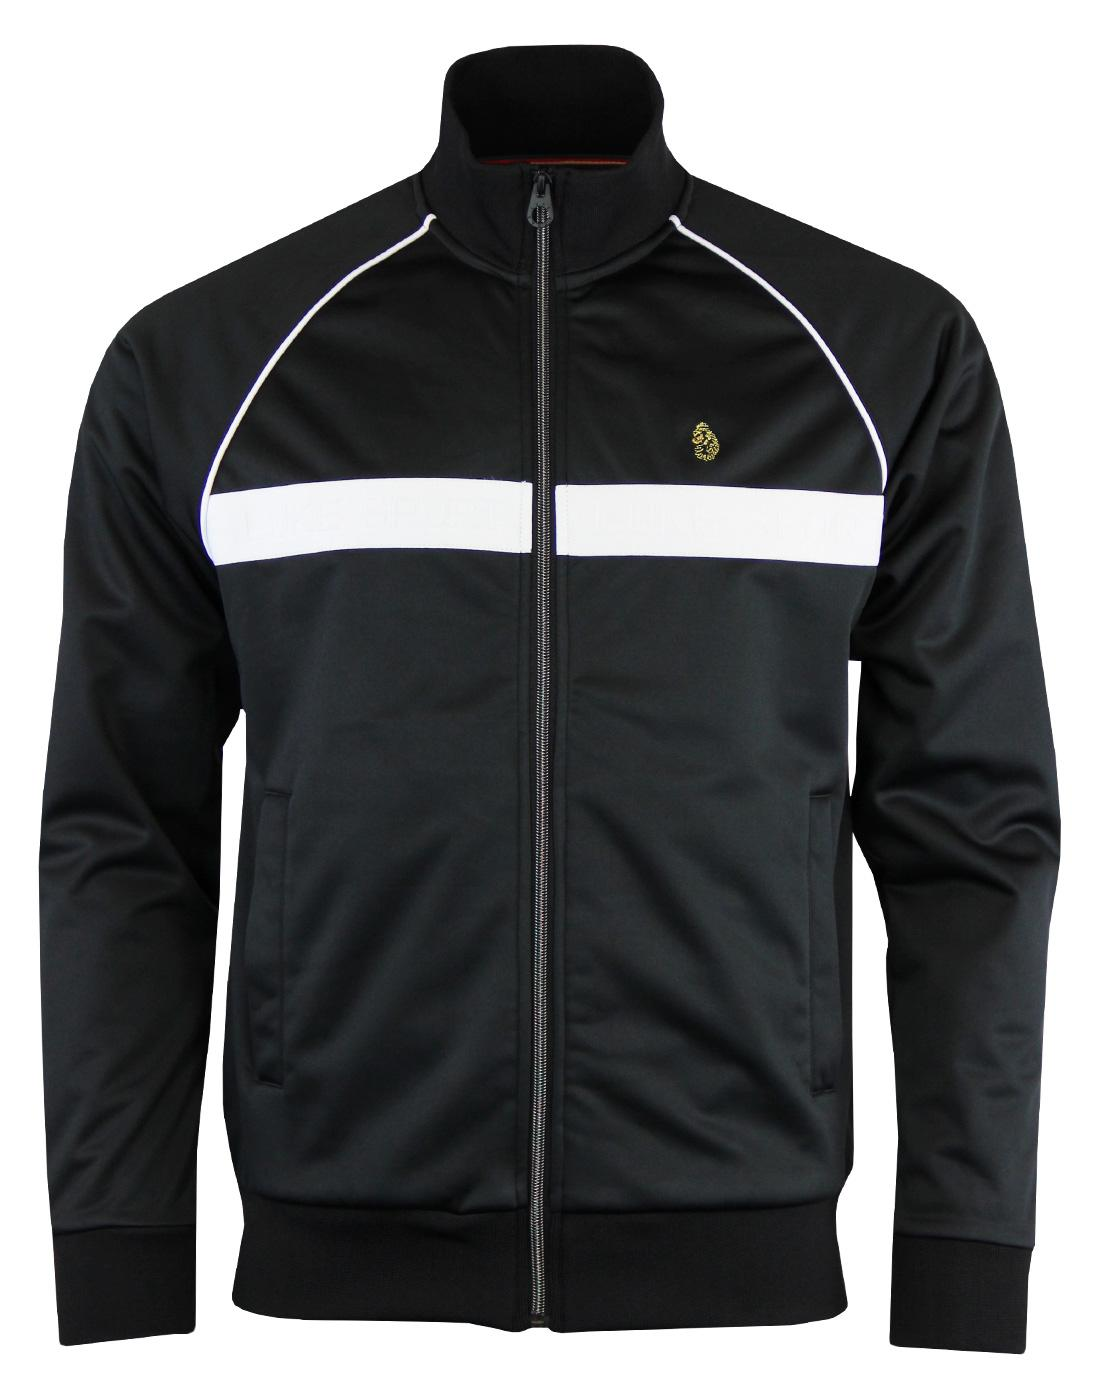 Eric LUKE 1977 Retro Neoprene Stripe Track Jacket